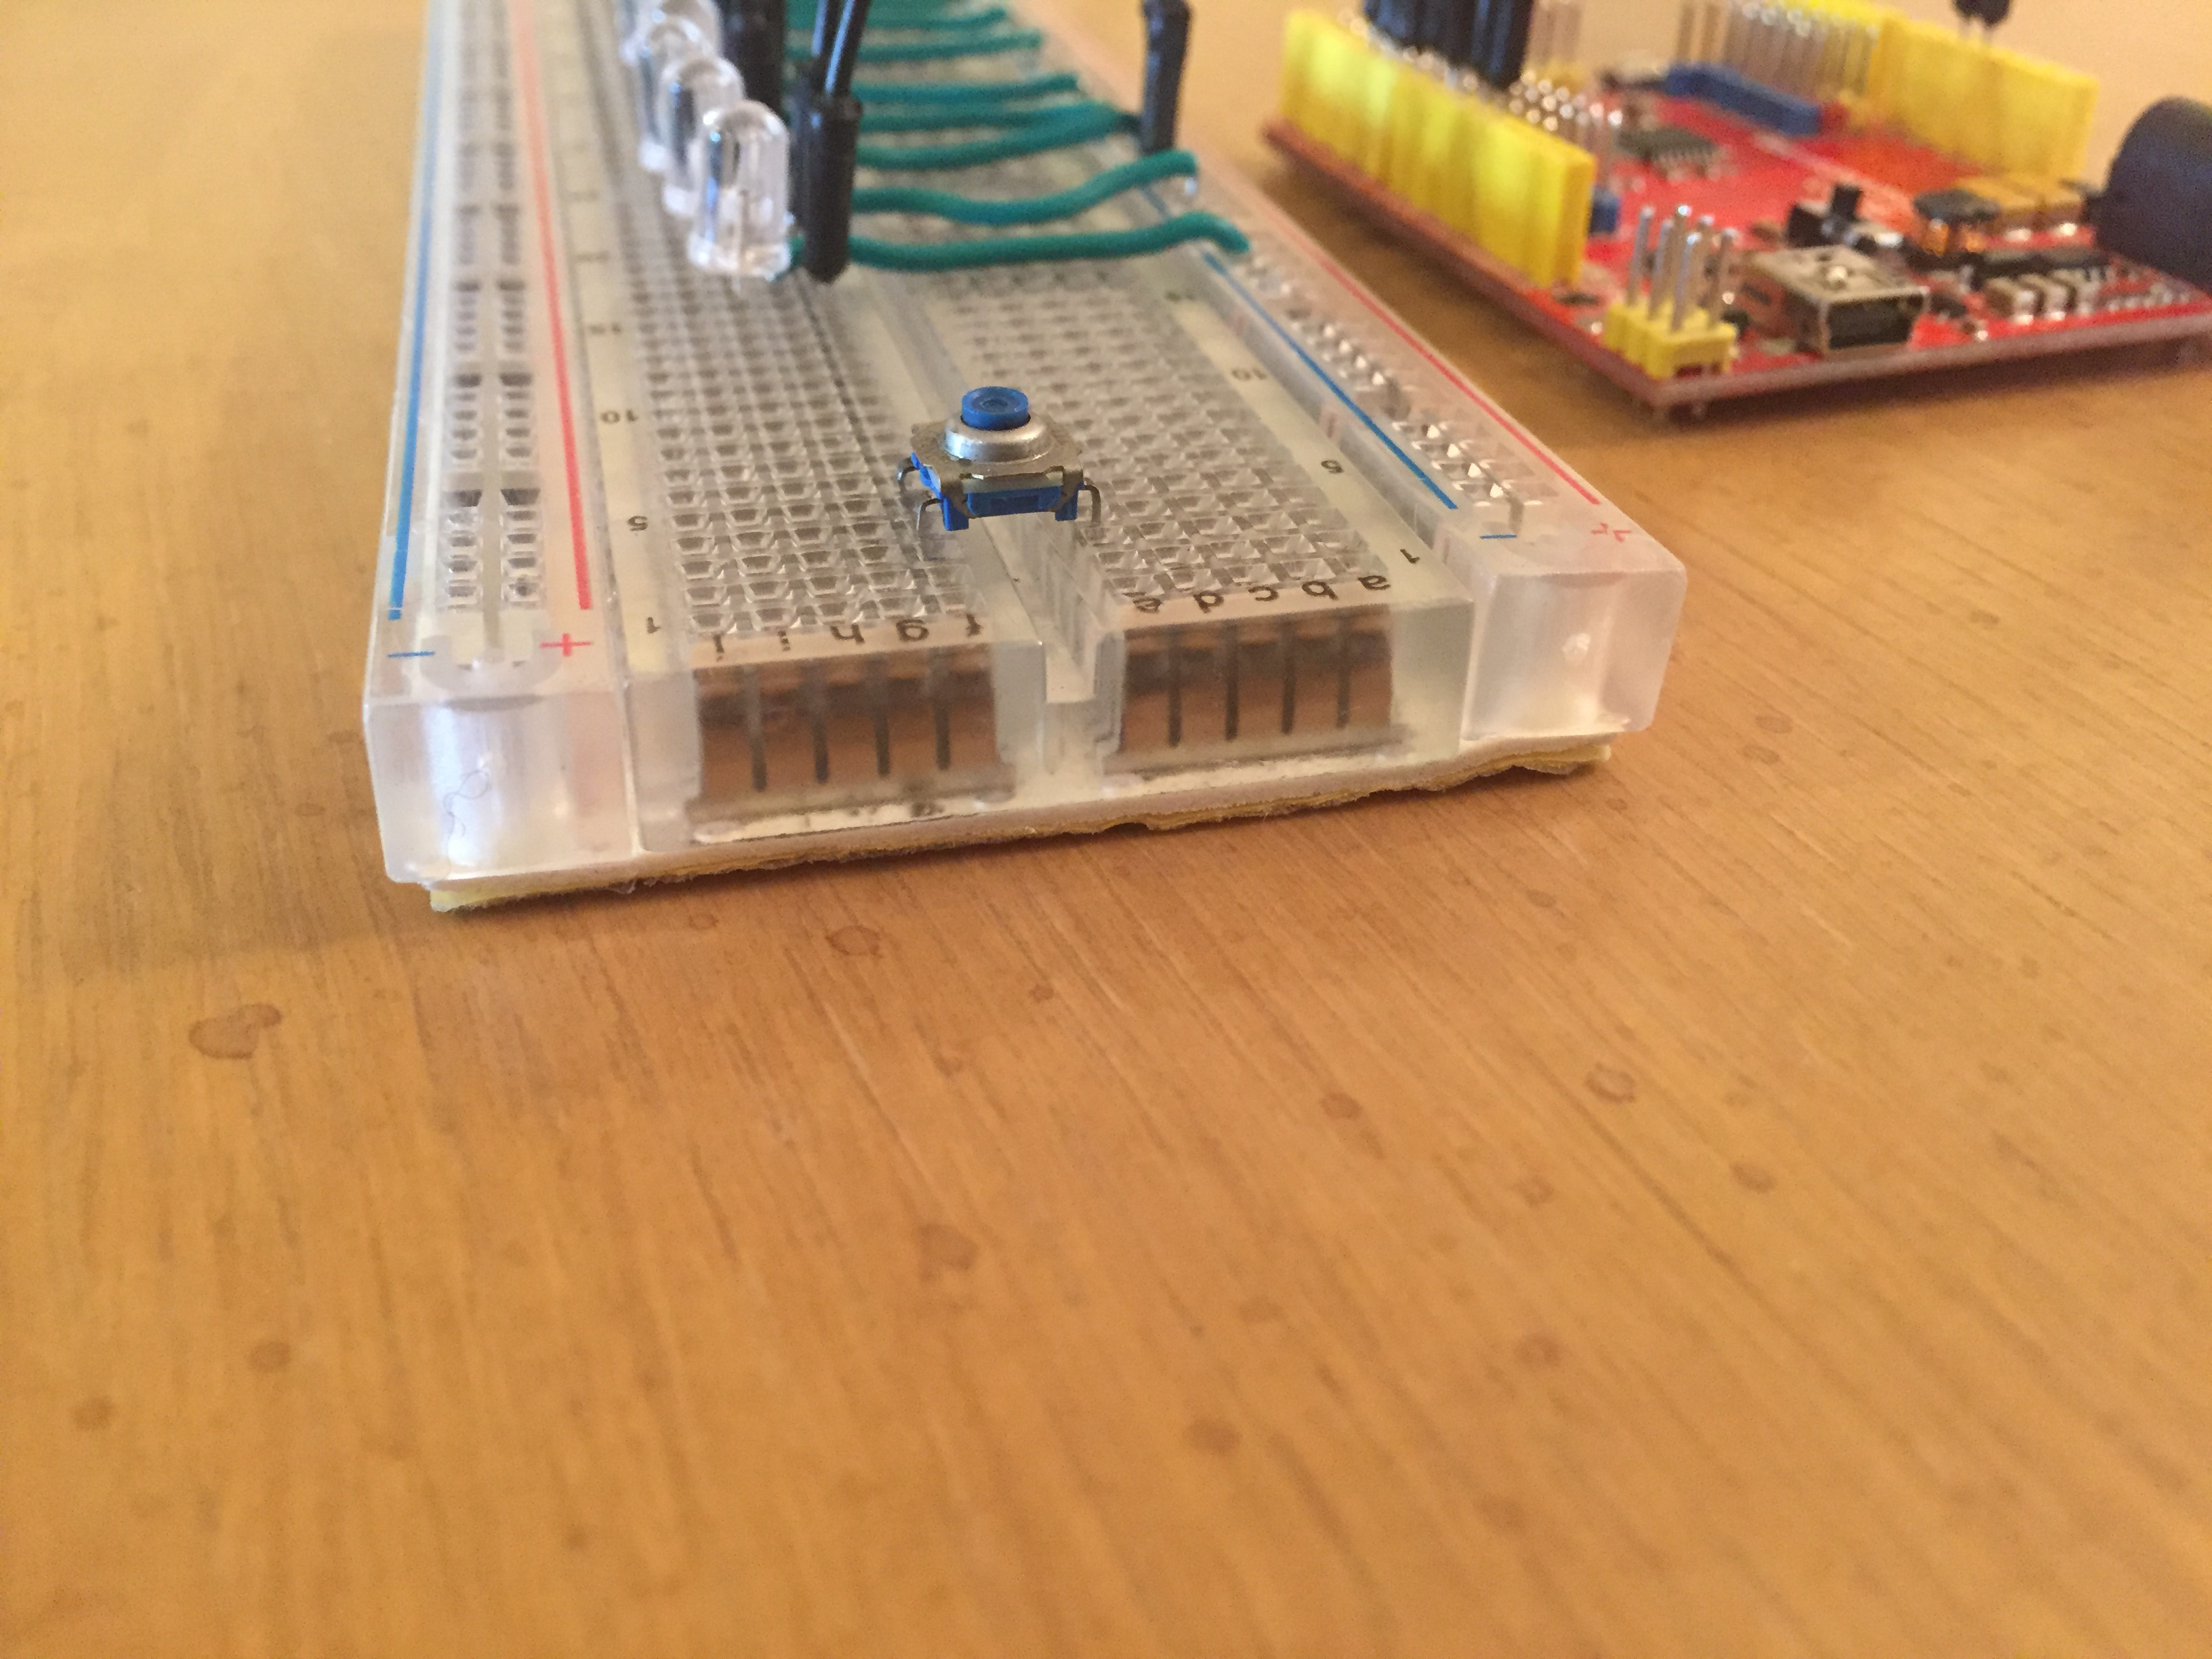 Picture of Next Place the Button on the Breadboard